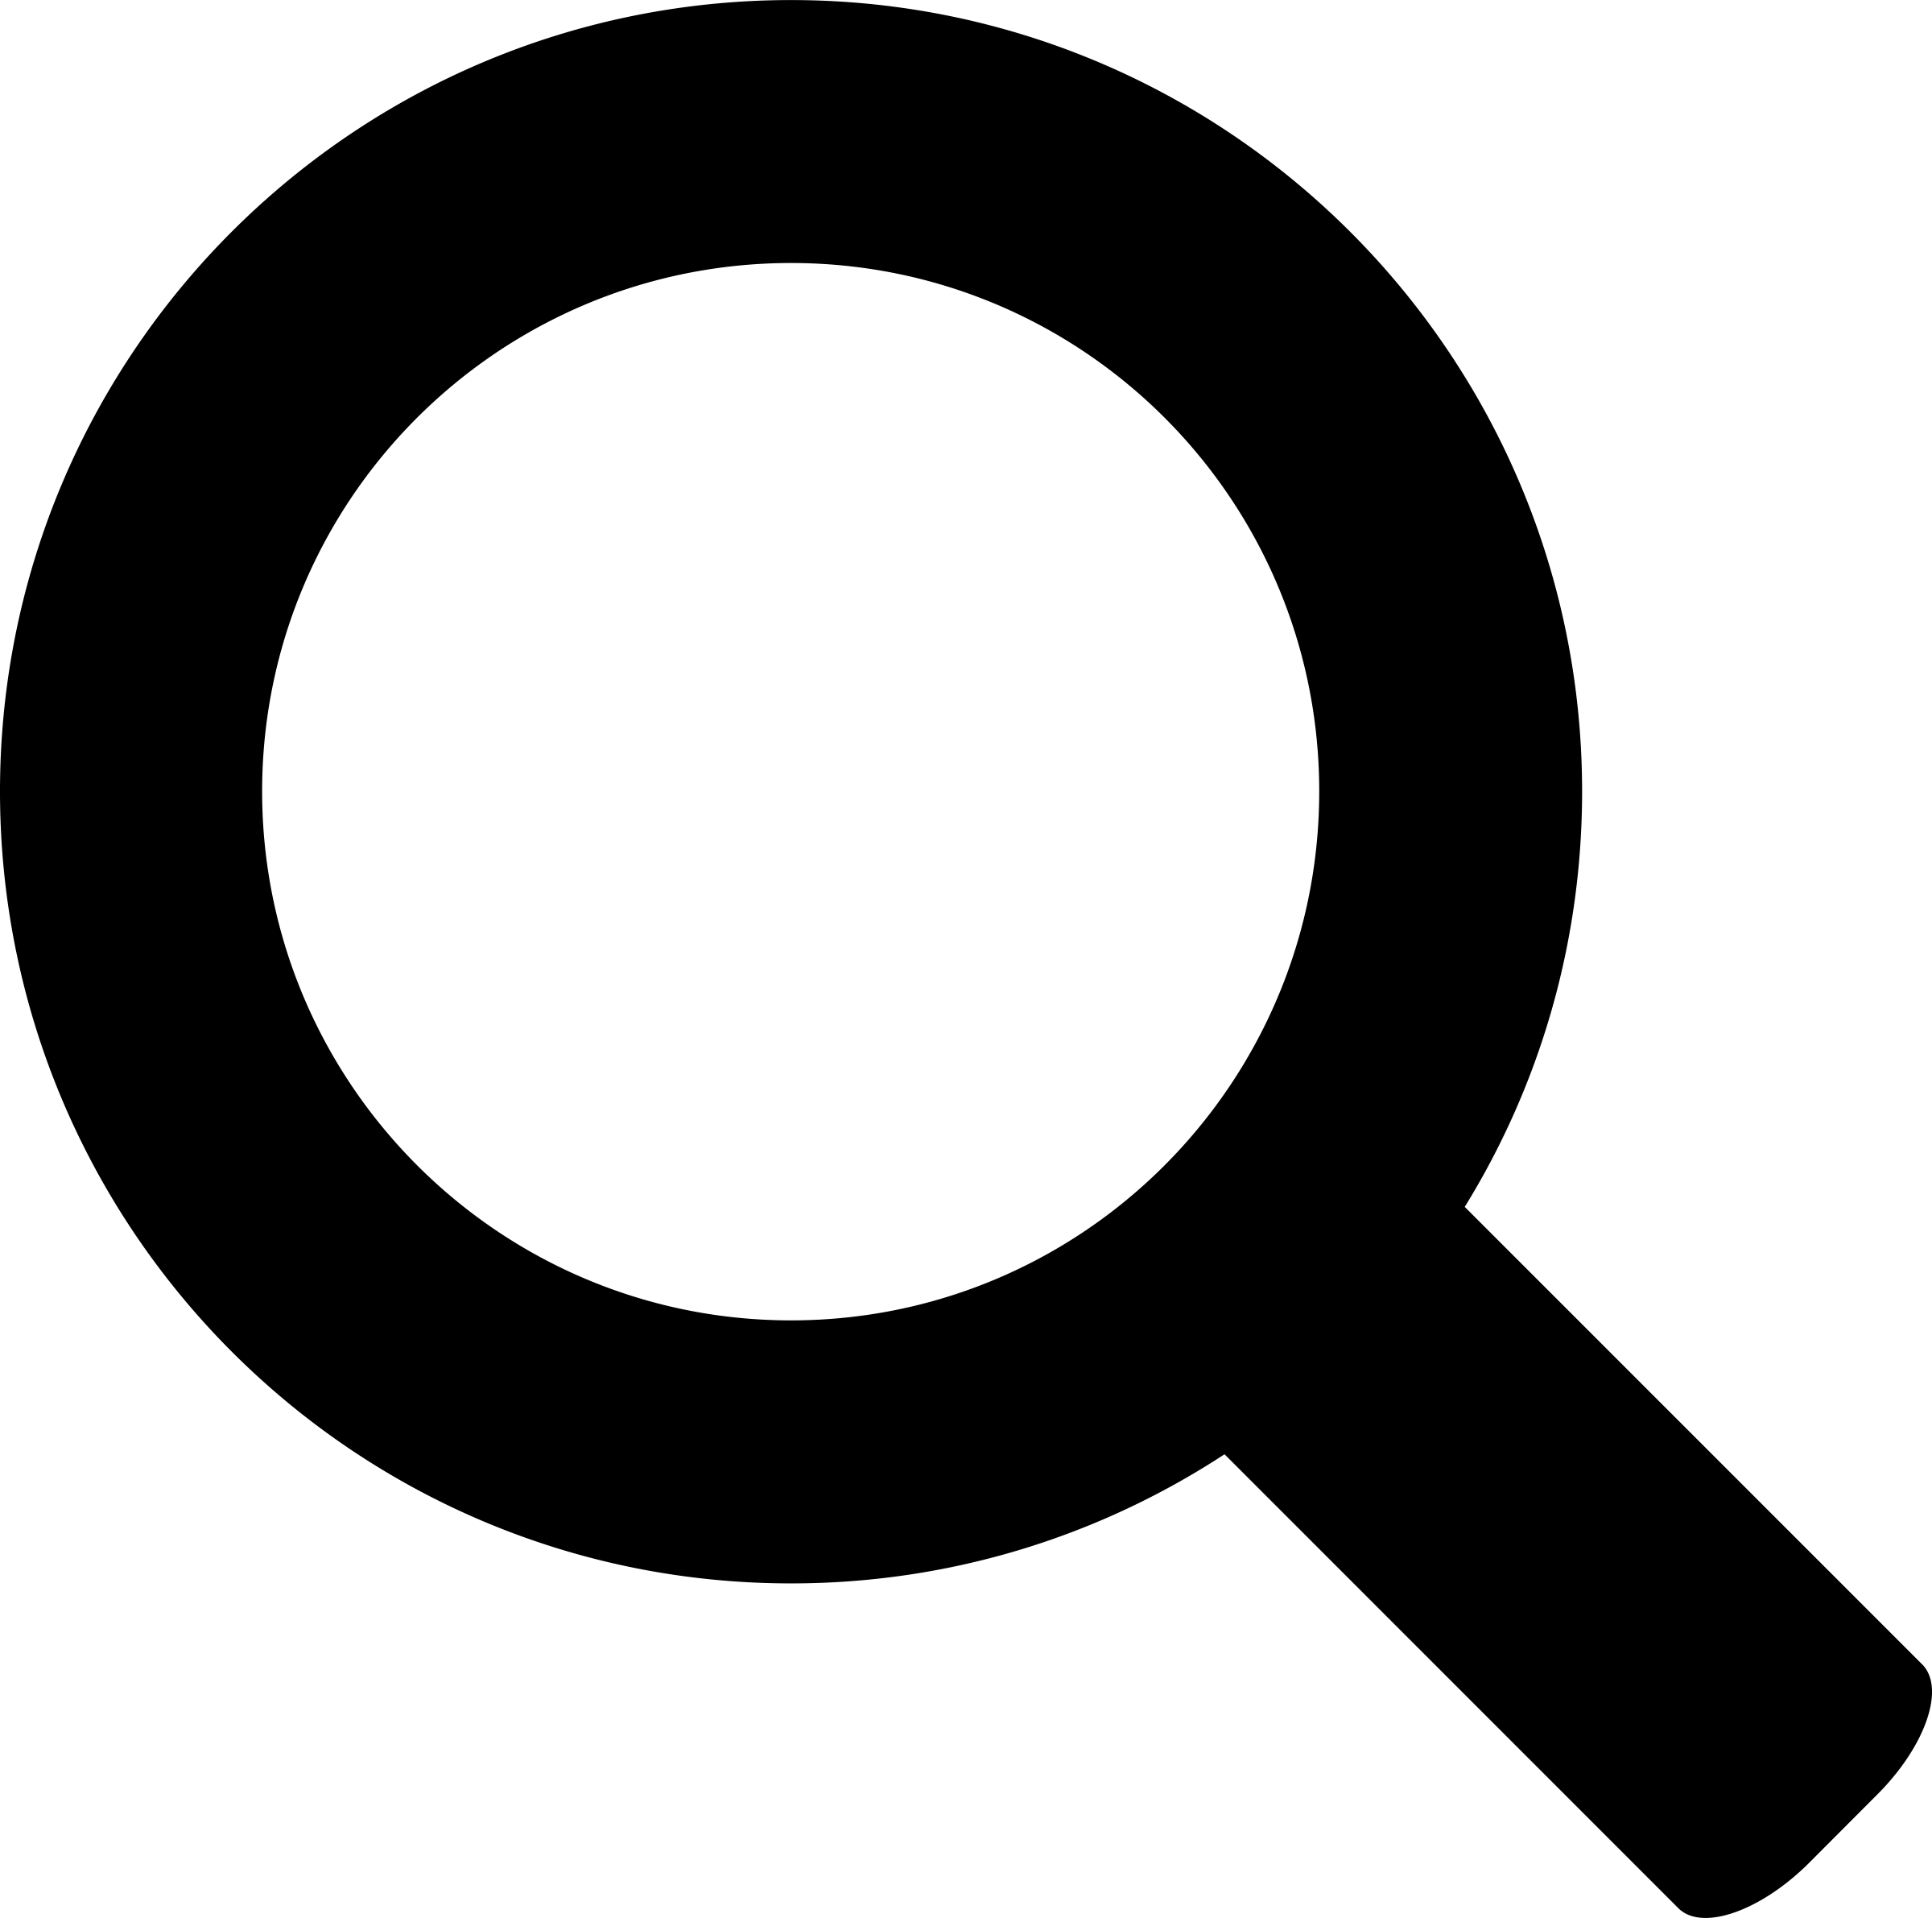 simple bold search icon transparent png stickpng